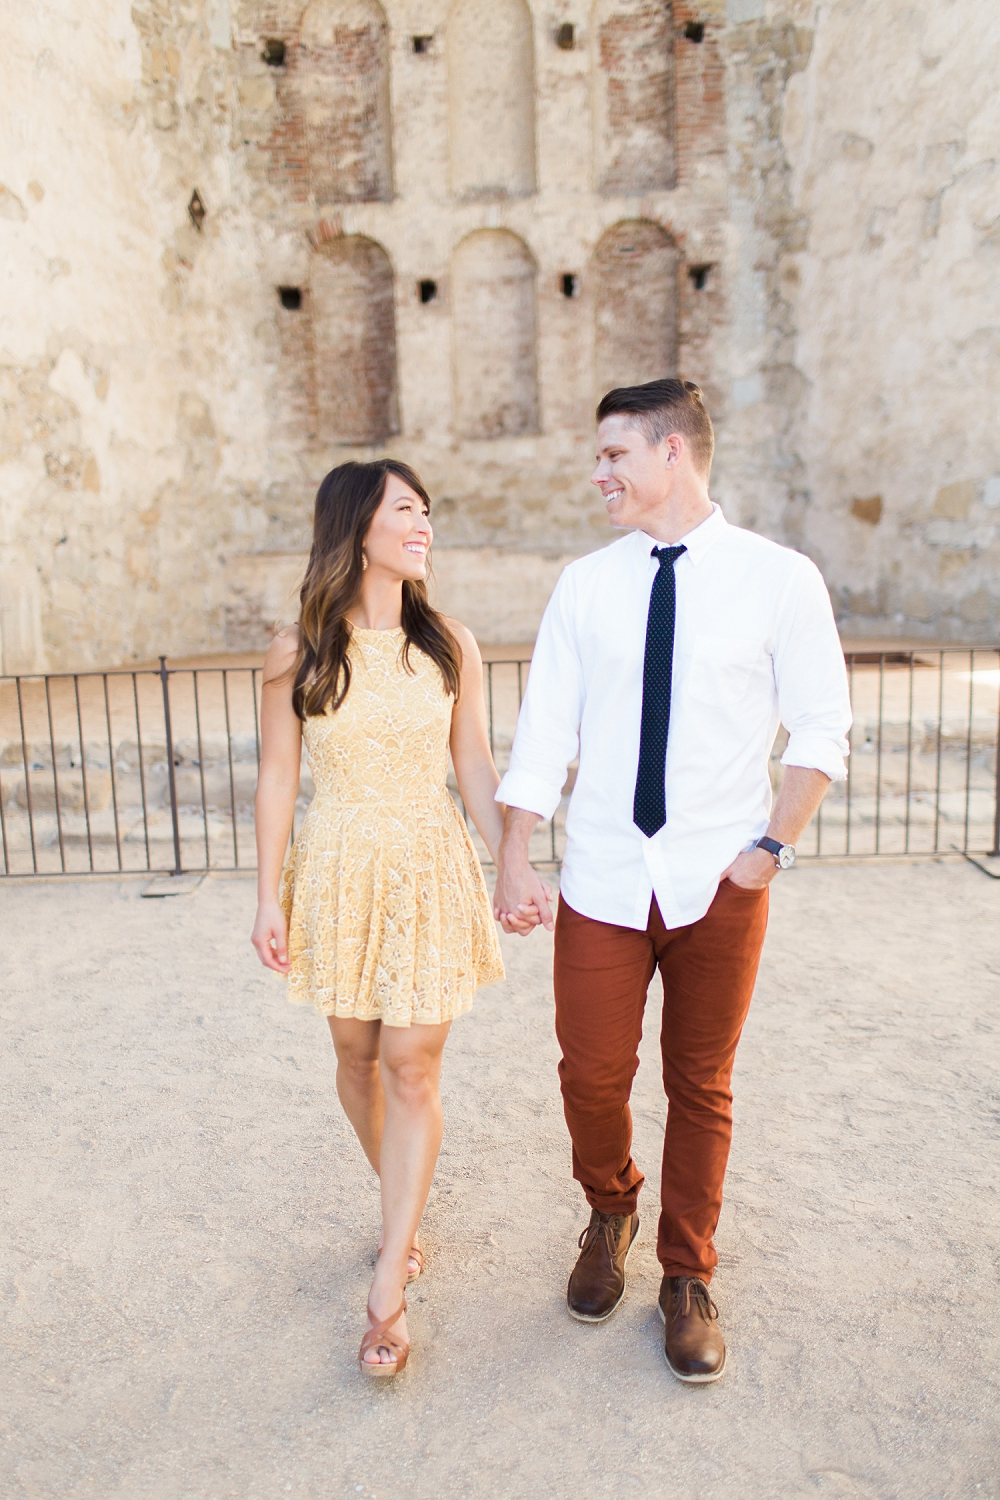 Megan Hartley Photography Orange County Engagement Photographer  San Juan Capistrano Wedding Photographer0031.jpg